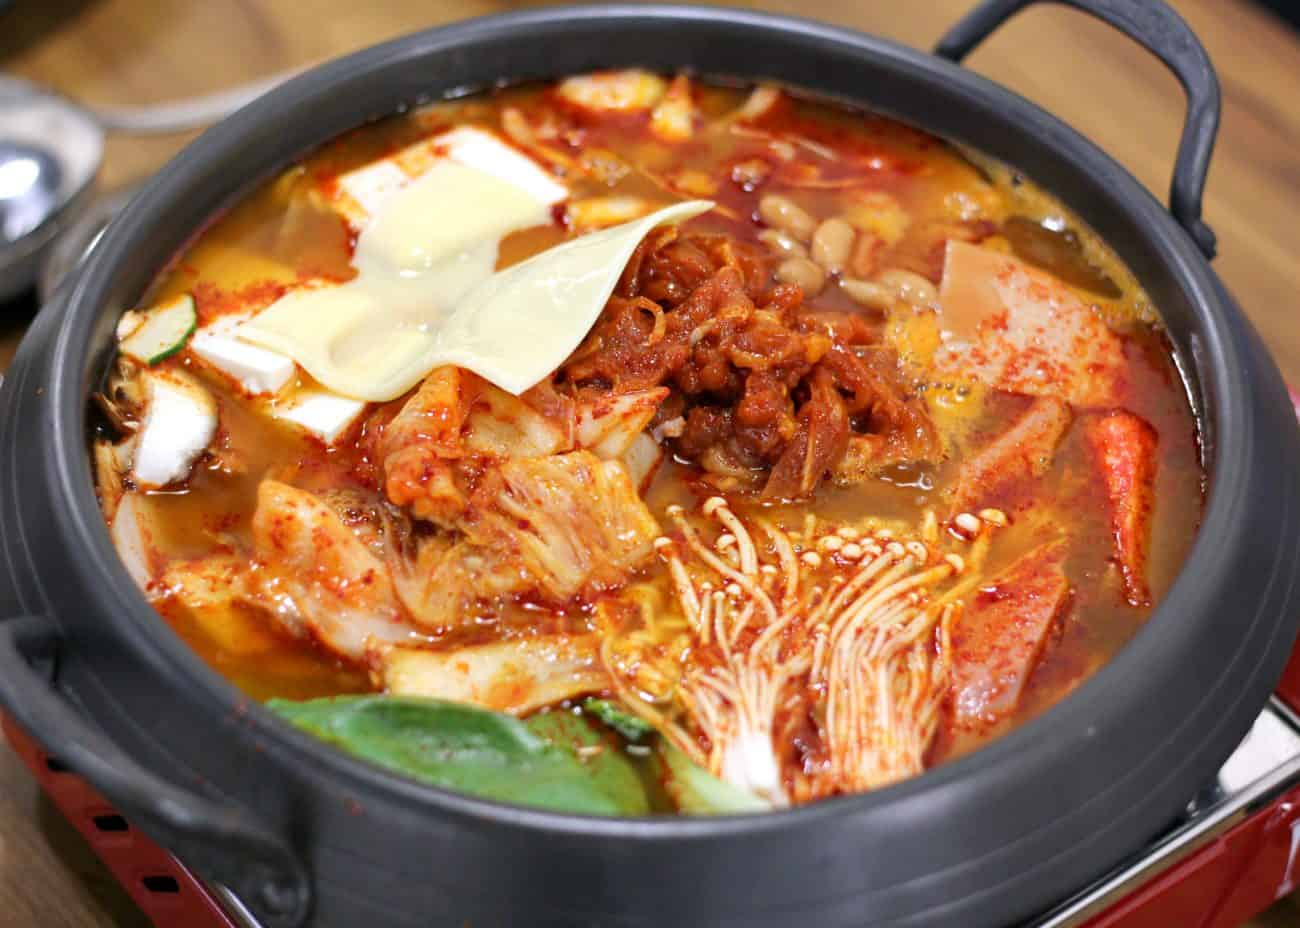 Muk bang korean restaurant delicious halal army stew for About korean cuisine